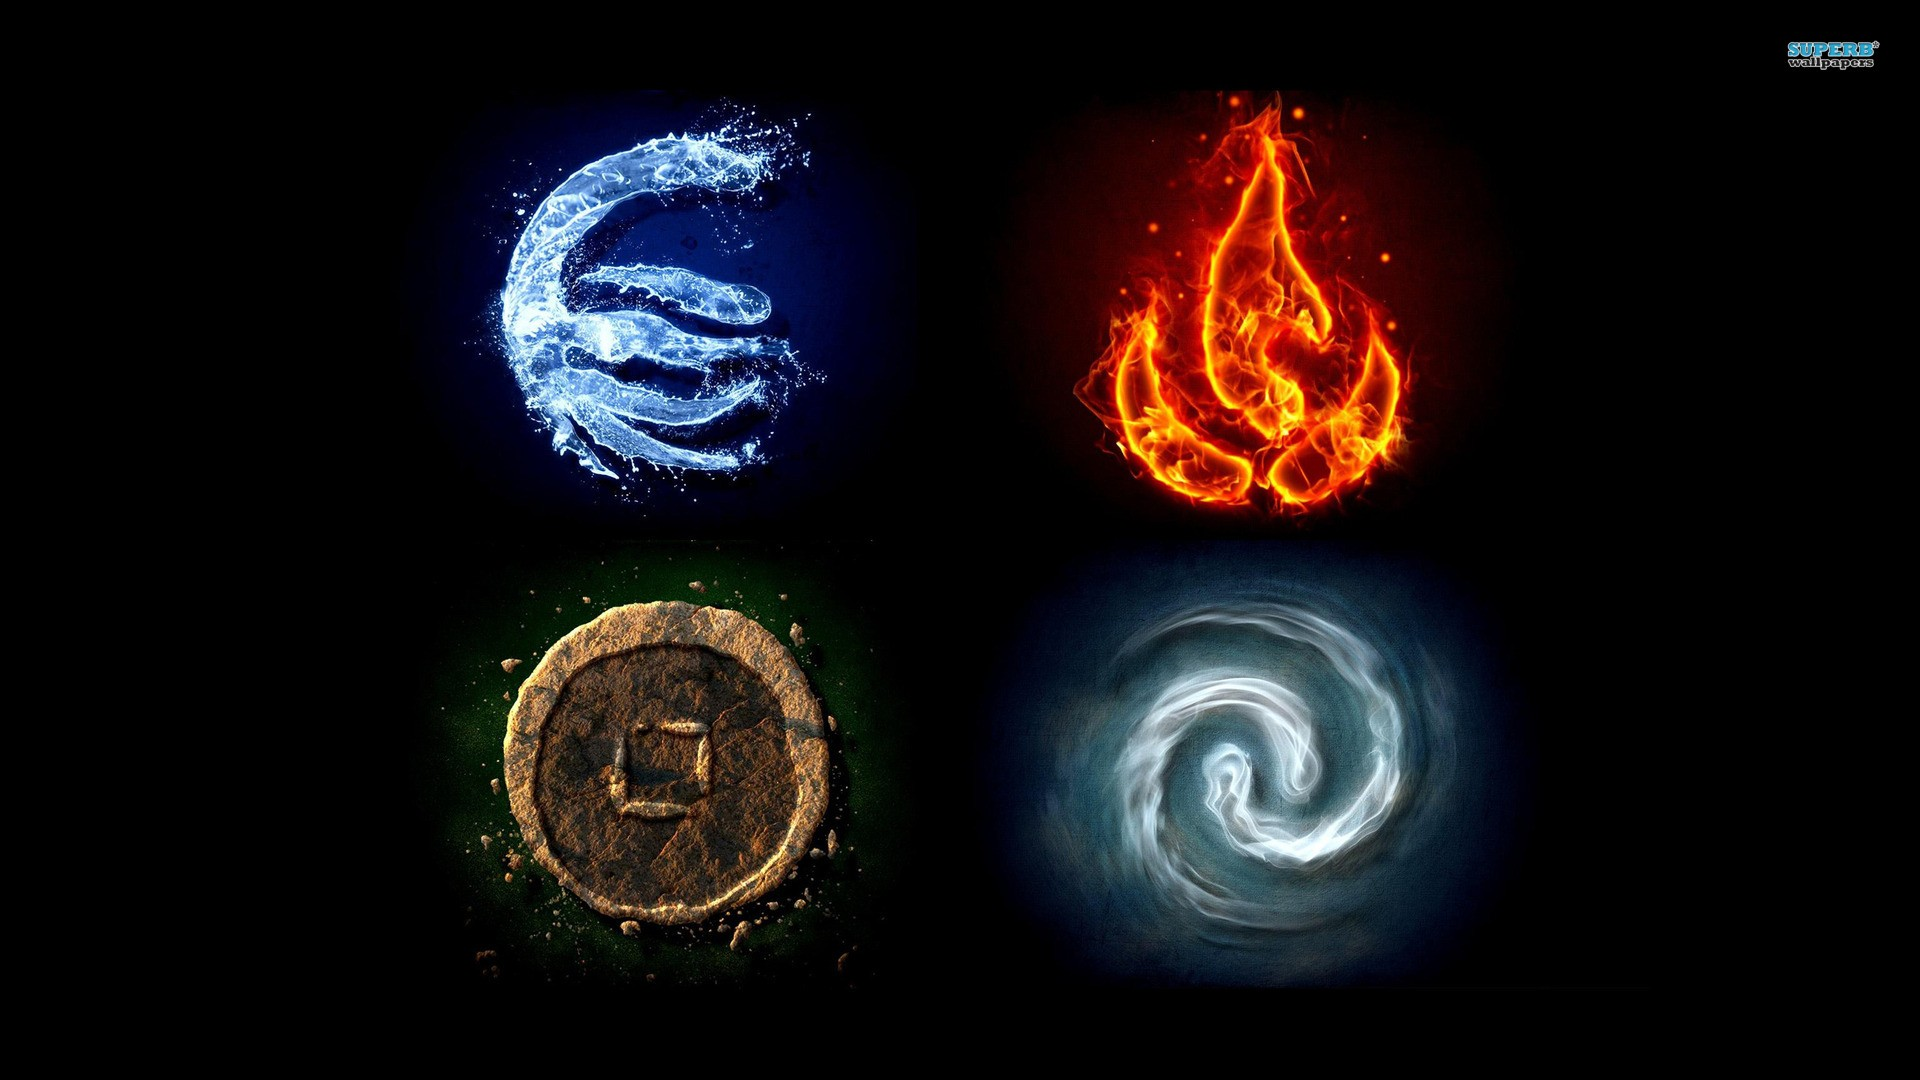 Water Fire Earth Avatar The Last Airbender Air Symbols The Elements